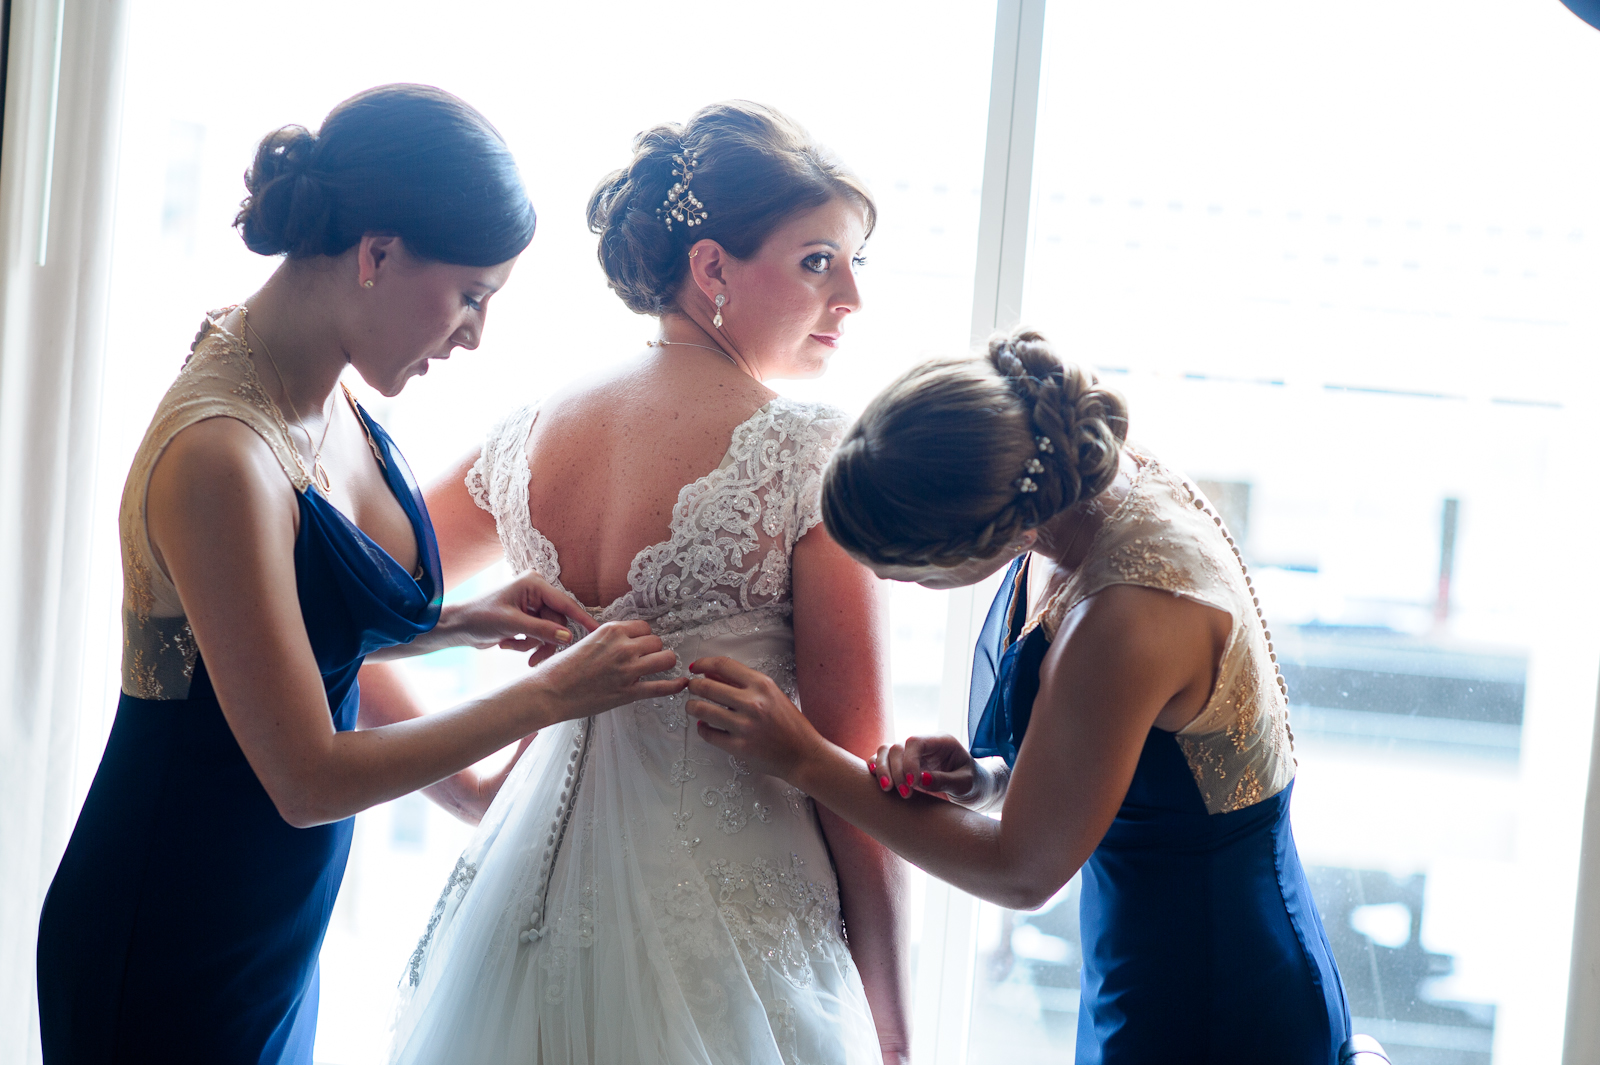 wedding photography dc photographer - district of columbia photography weddingphoto 2012_-9.jpg